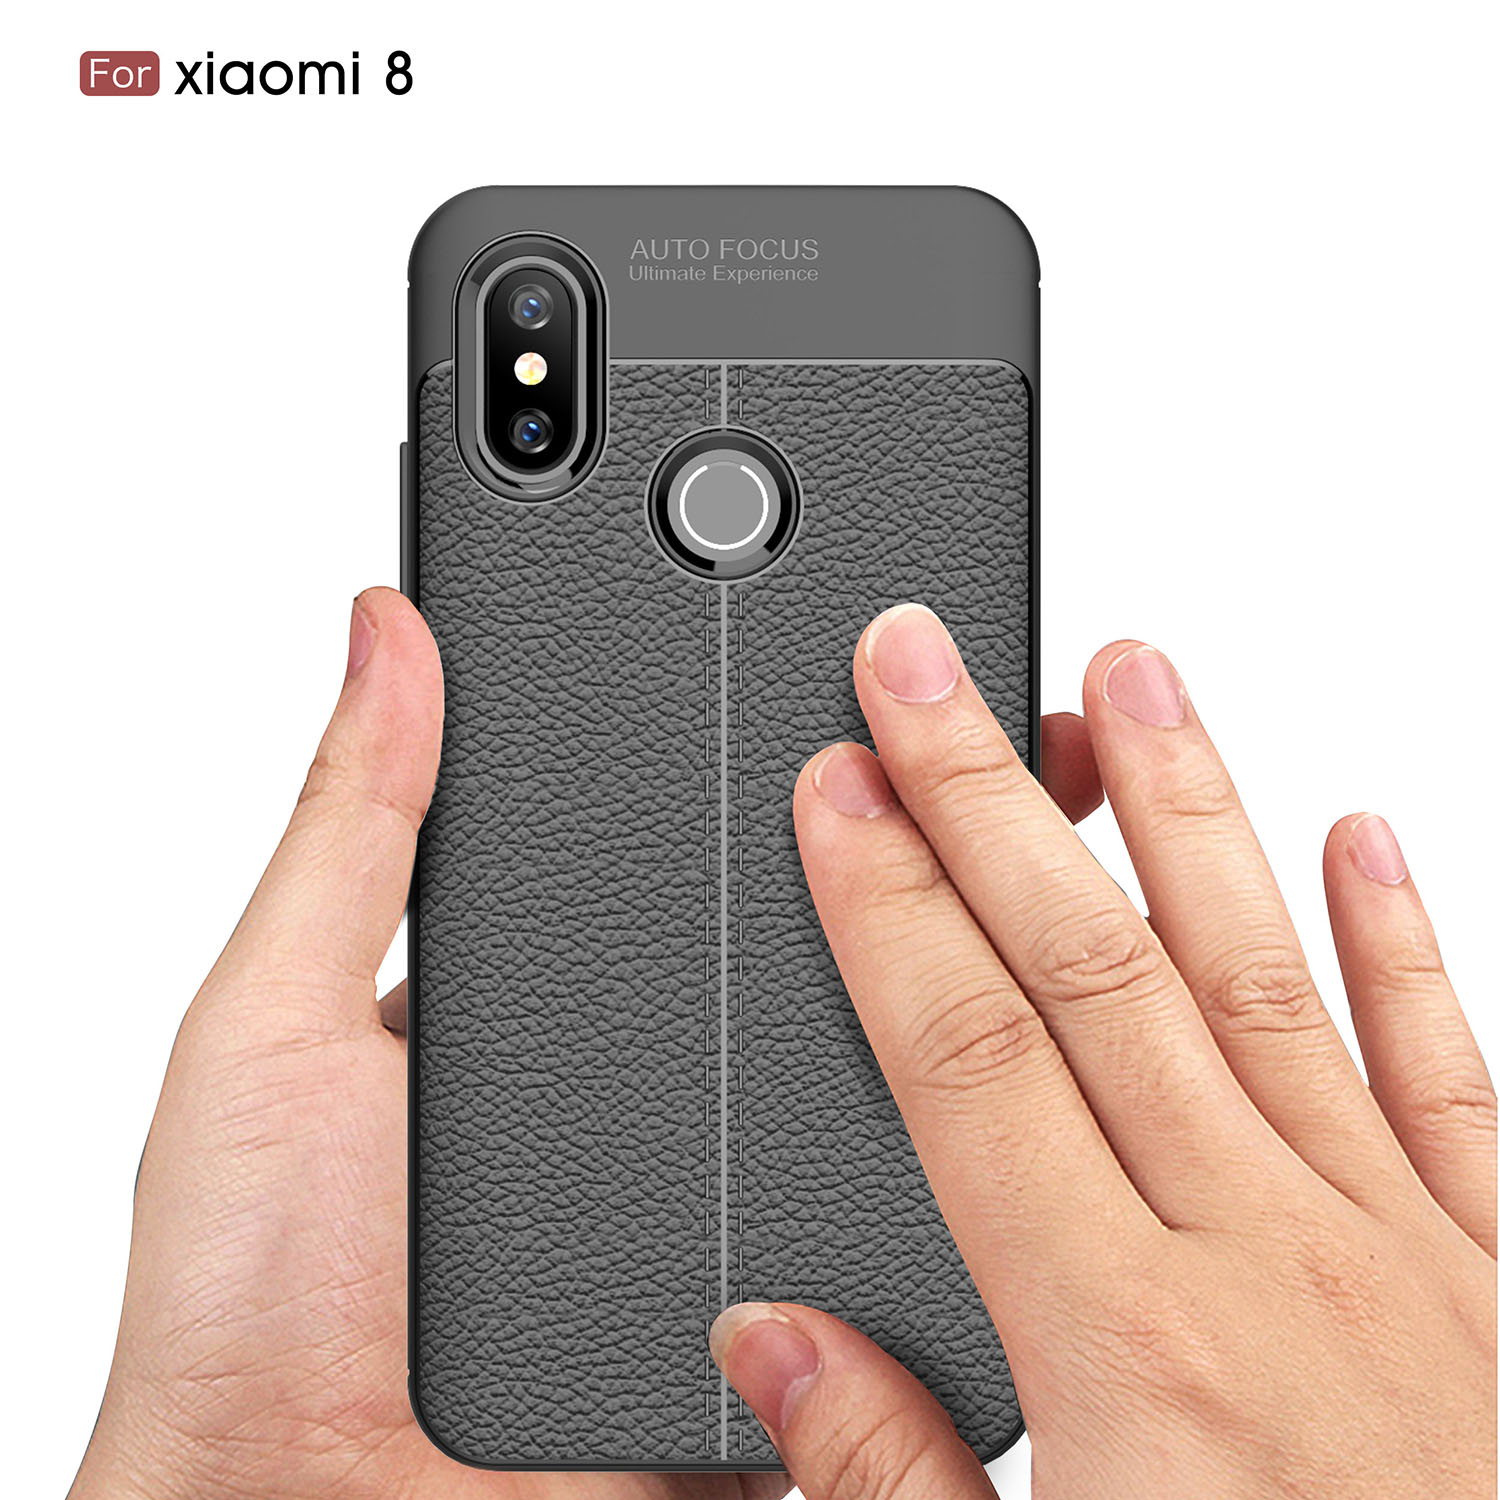 For Xiaomi Mi Mix Max 2 5X 5s 2s 6 6X 8 SE Note 3 Case Luxury Soft TPU  Leather phone Case For Redmi 4A 4X S2 Note 5A 5 4 4X pro